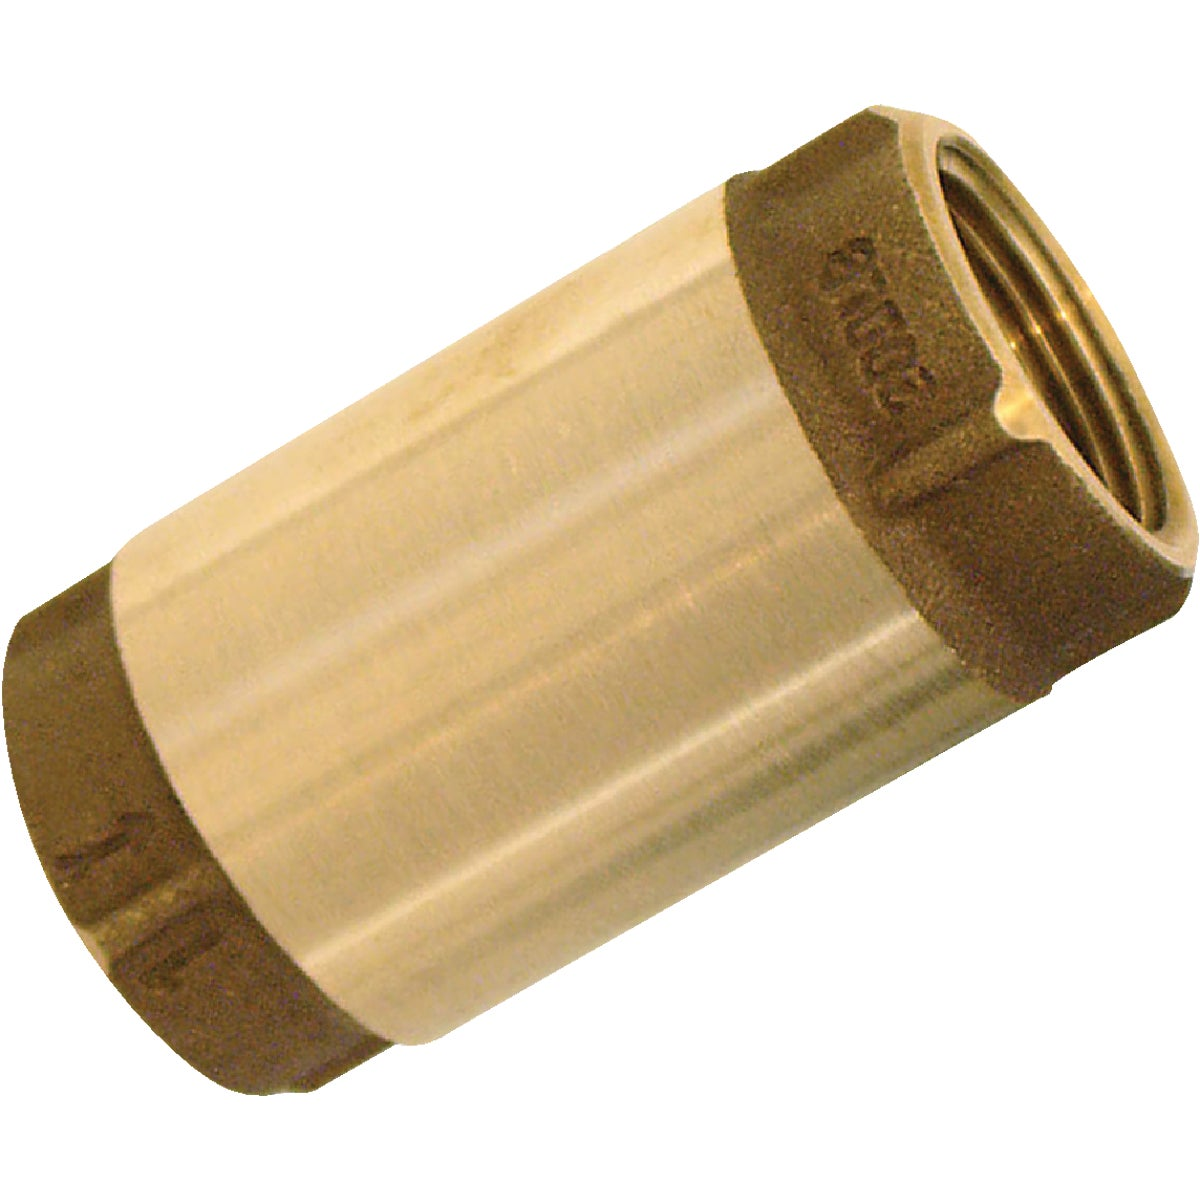 "3/4"" LF CHECK VALVE - 7502 by Simmons Mfg Co"